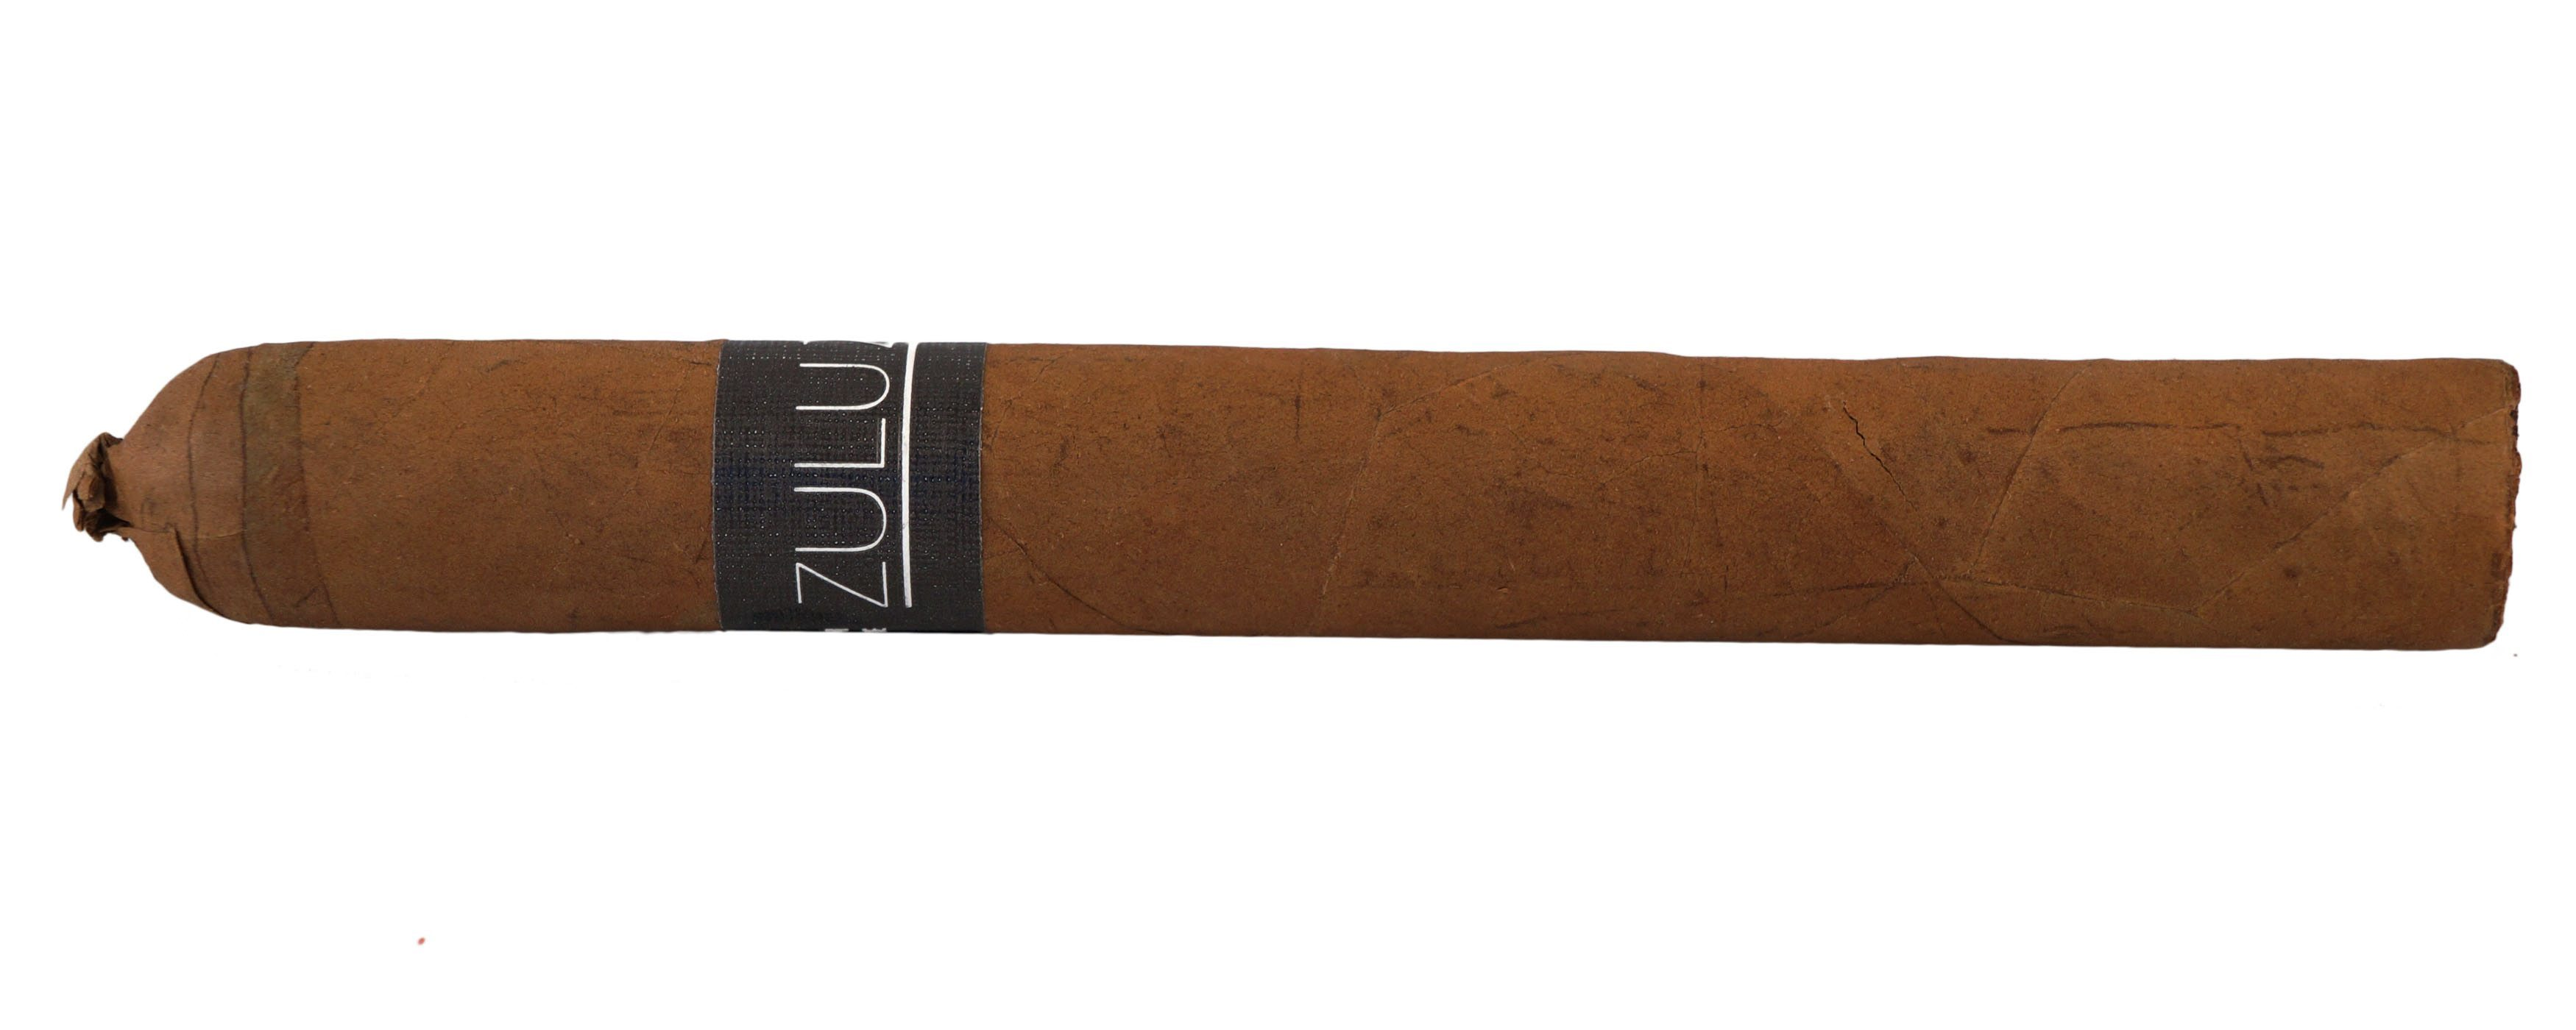 Blind Cigar Review: George Rico | S.T.K. Miami Zulu Zulu Mas Paz Edition Connecticut